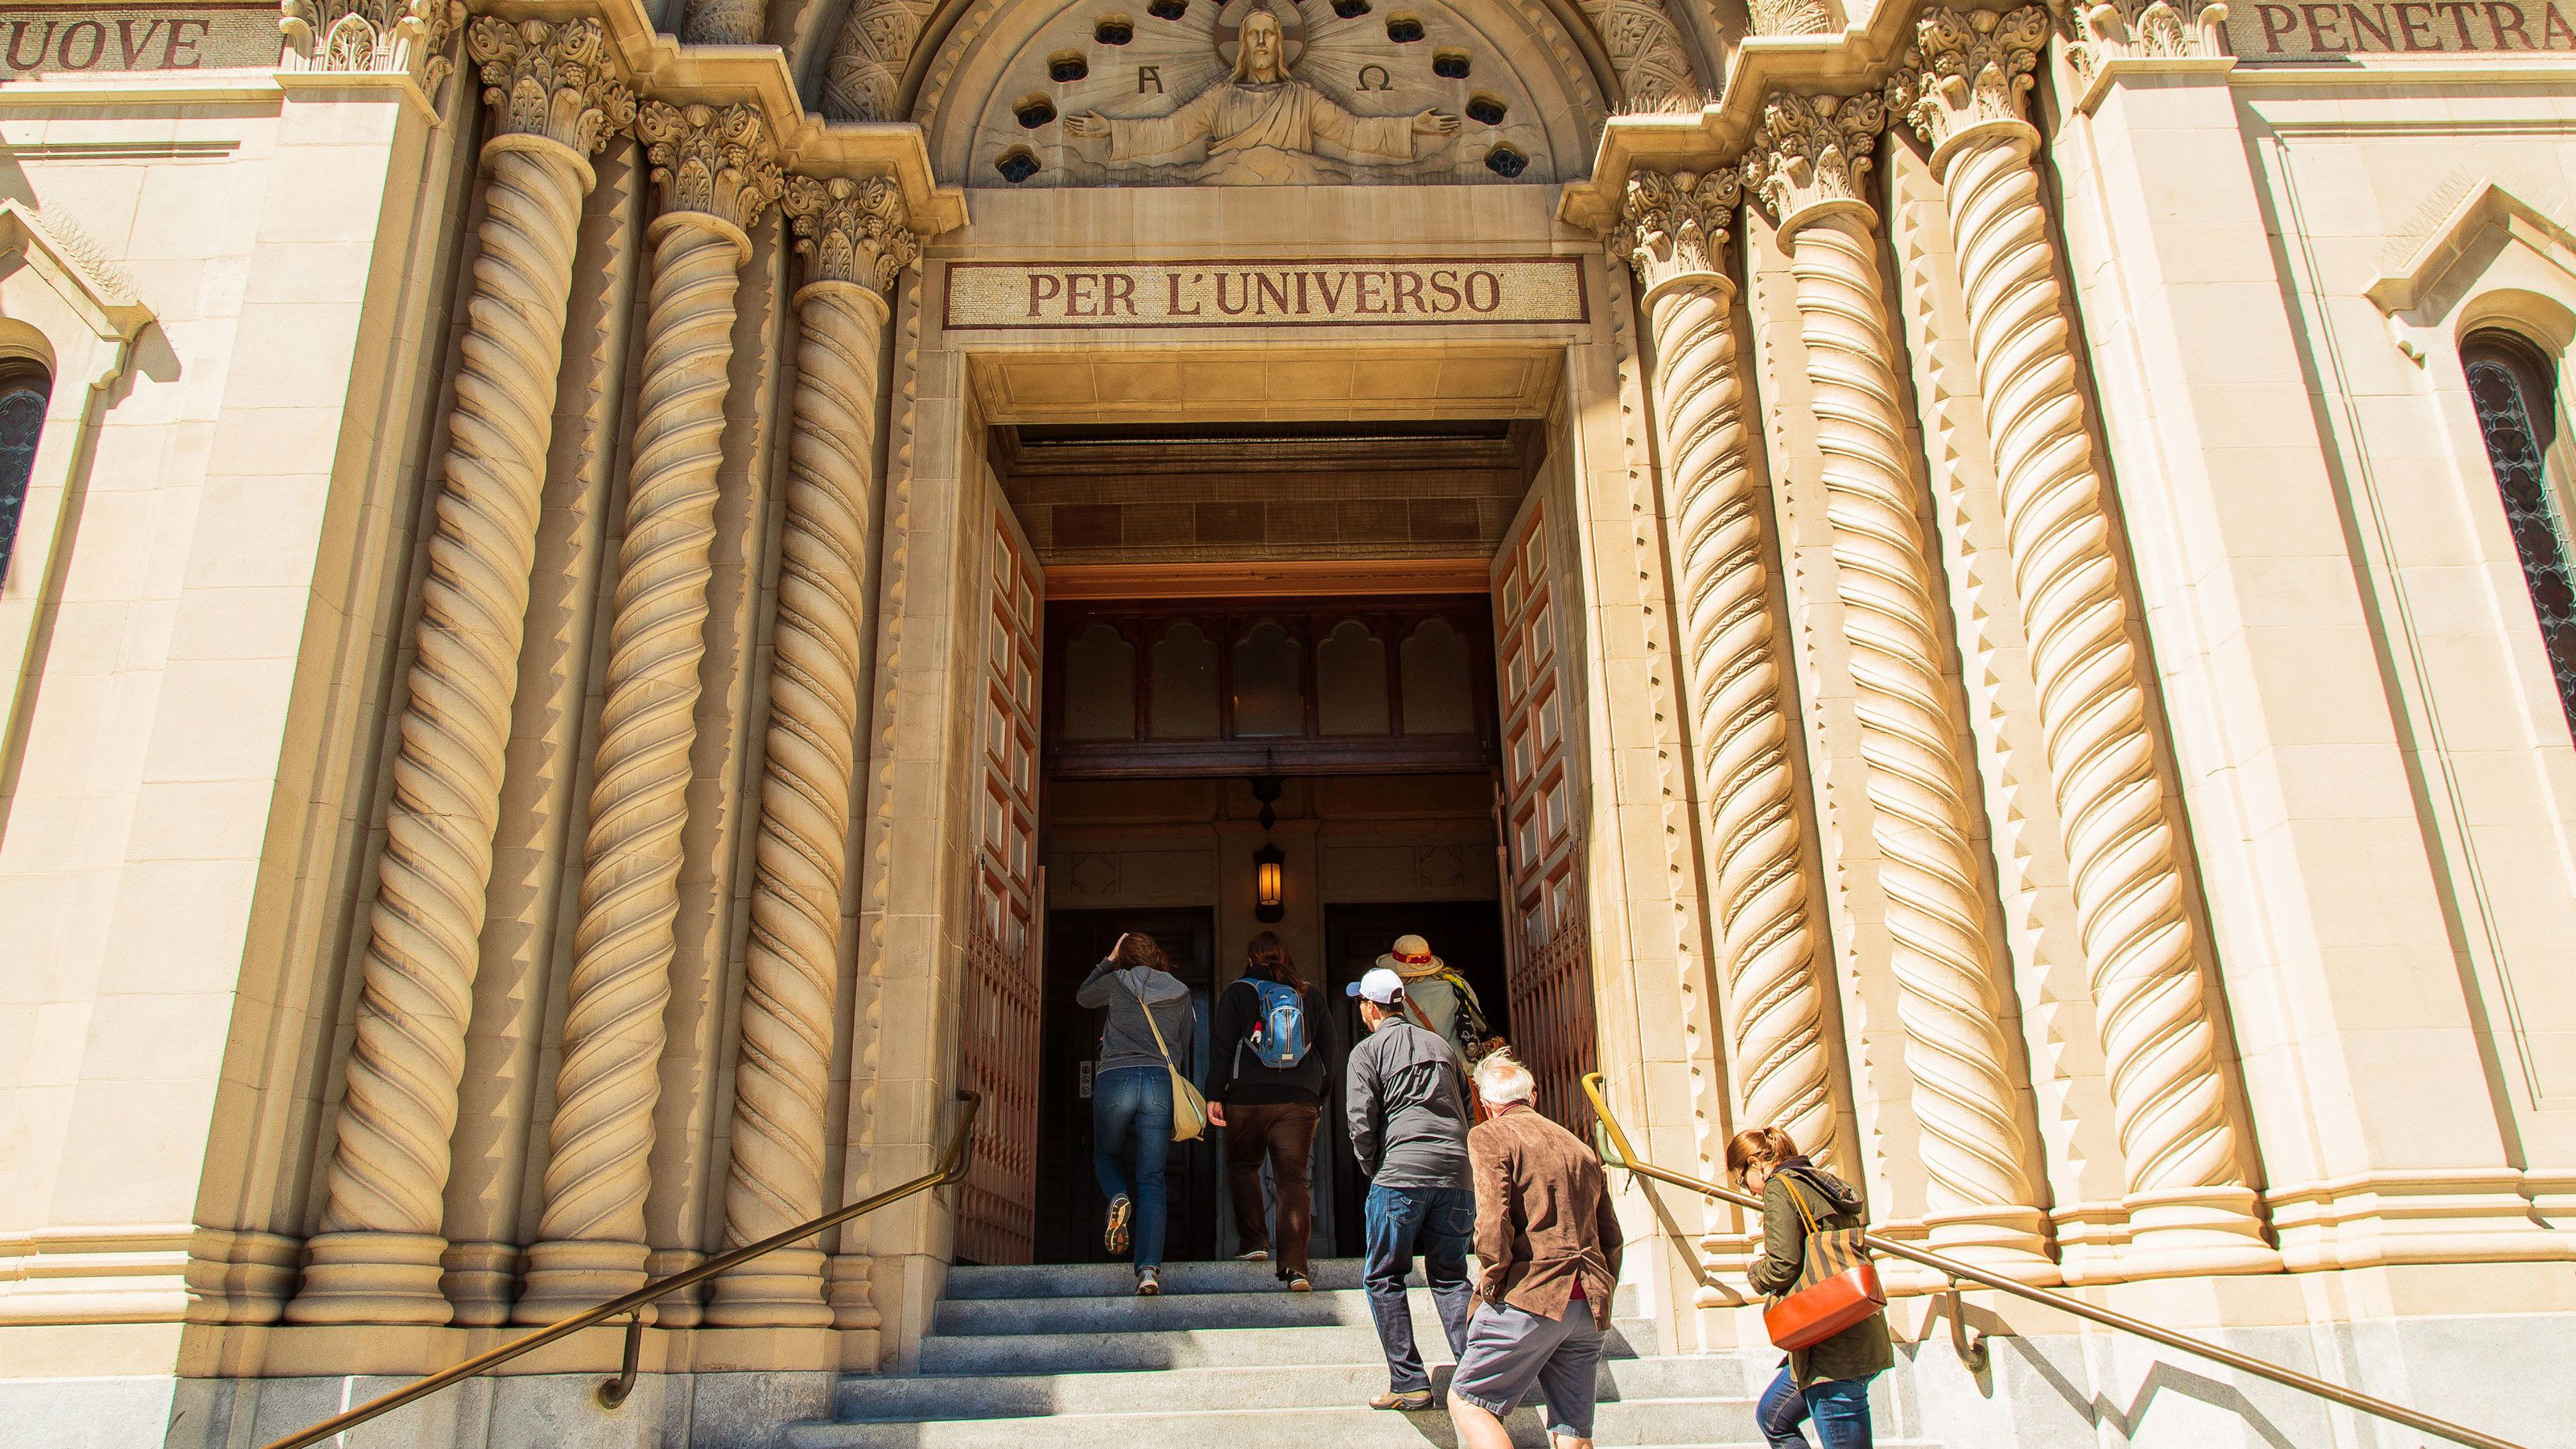 Group at the columned entrance of Per L'Universo church in San Francisco